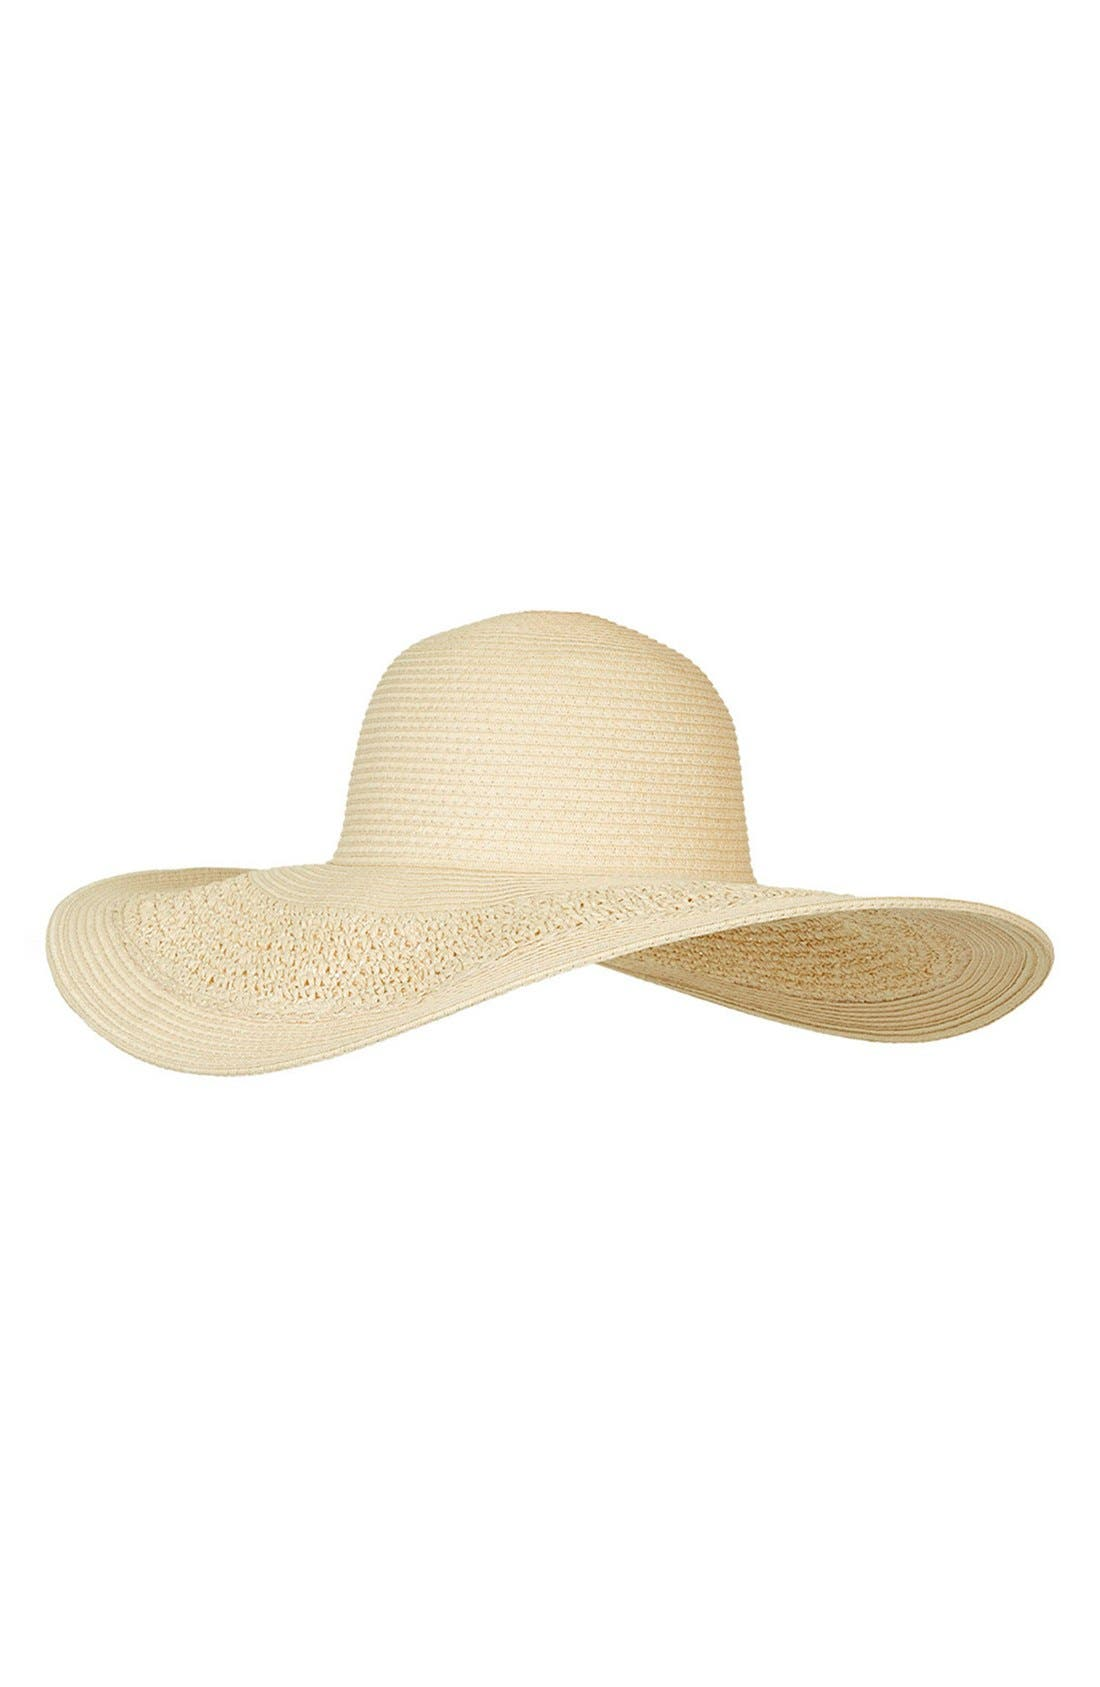 Alternate Image 3  - Topshop Crochet Floppy Hat